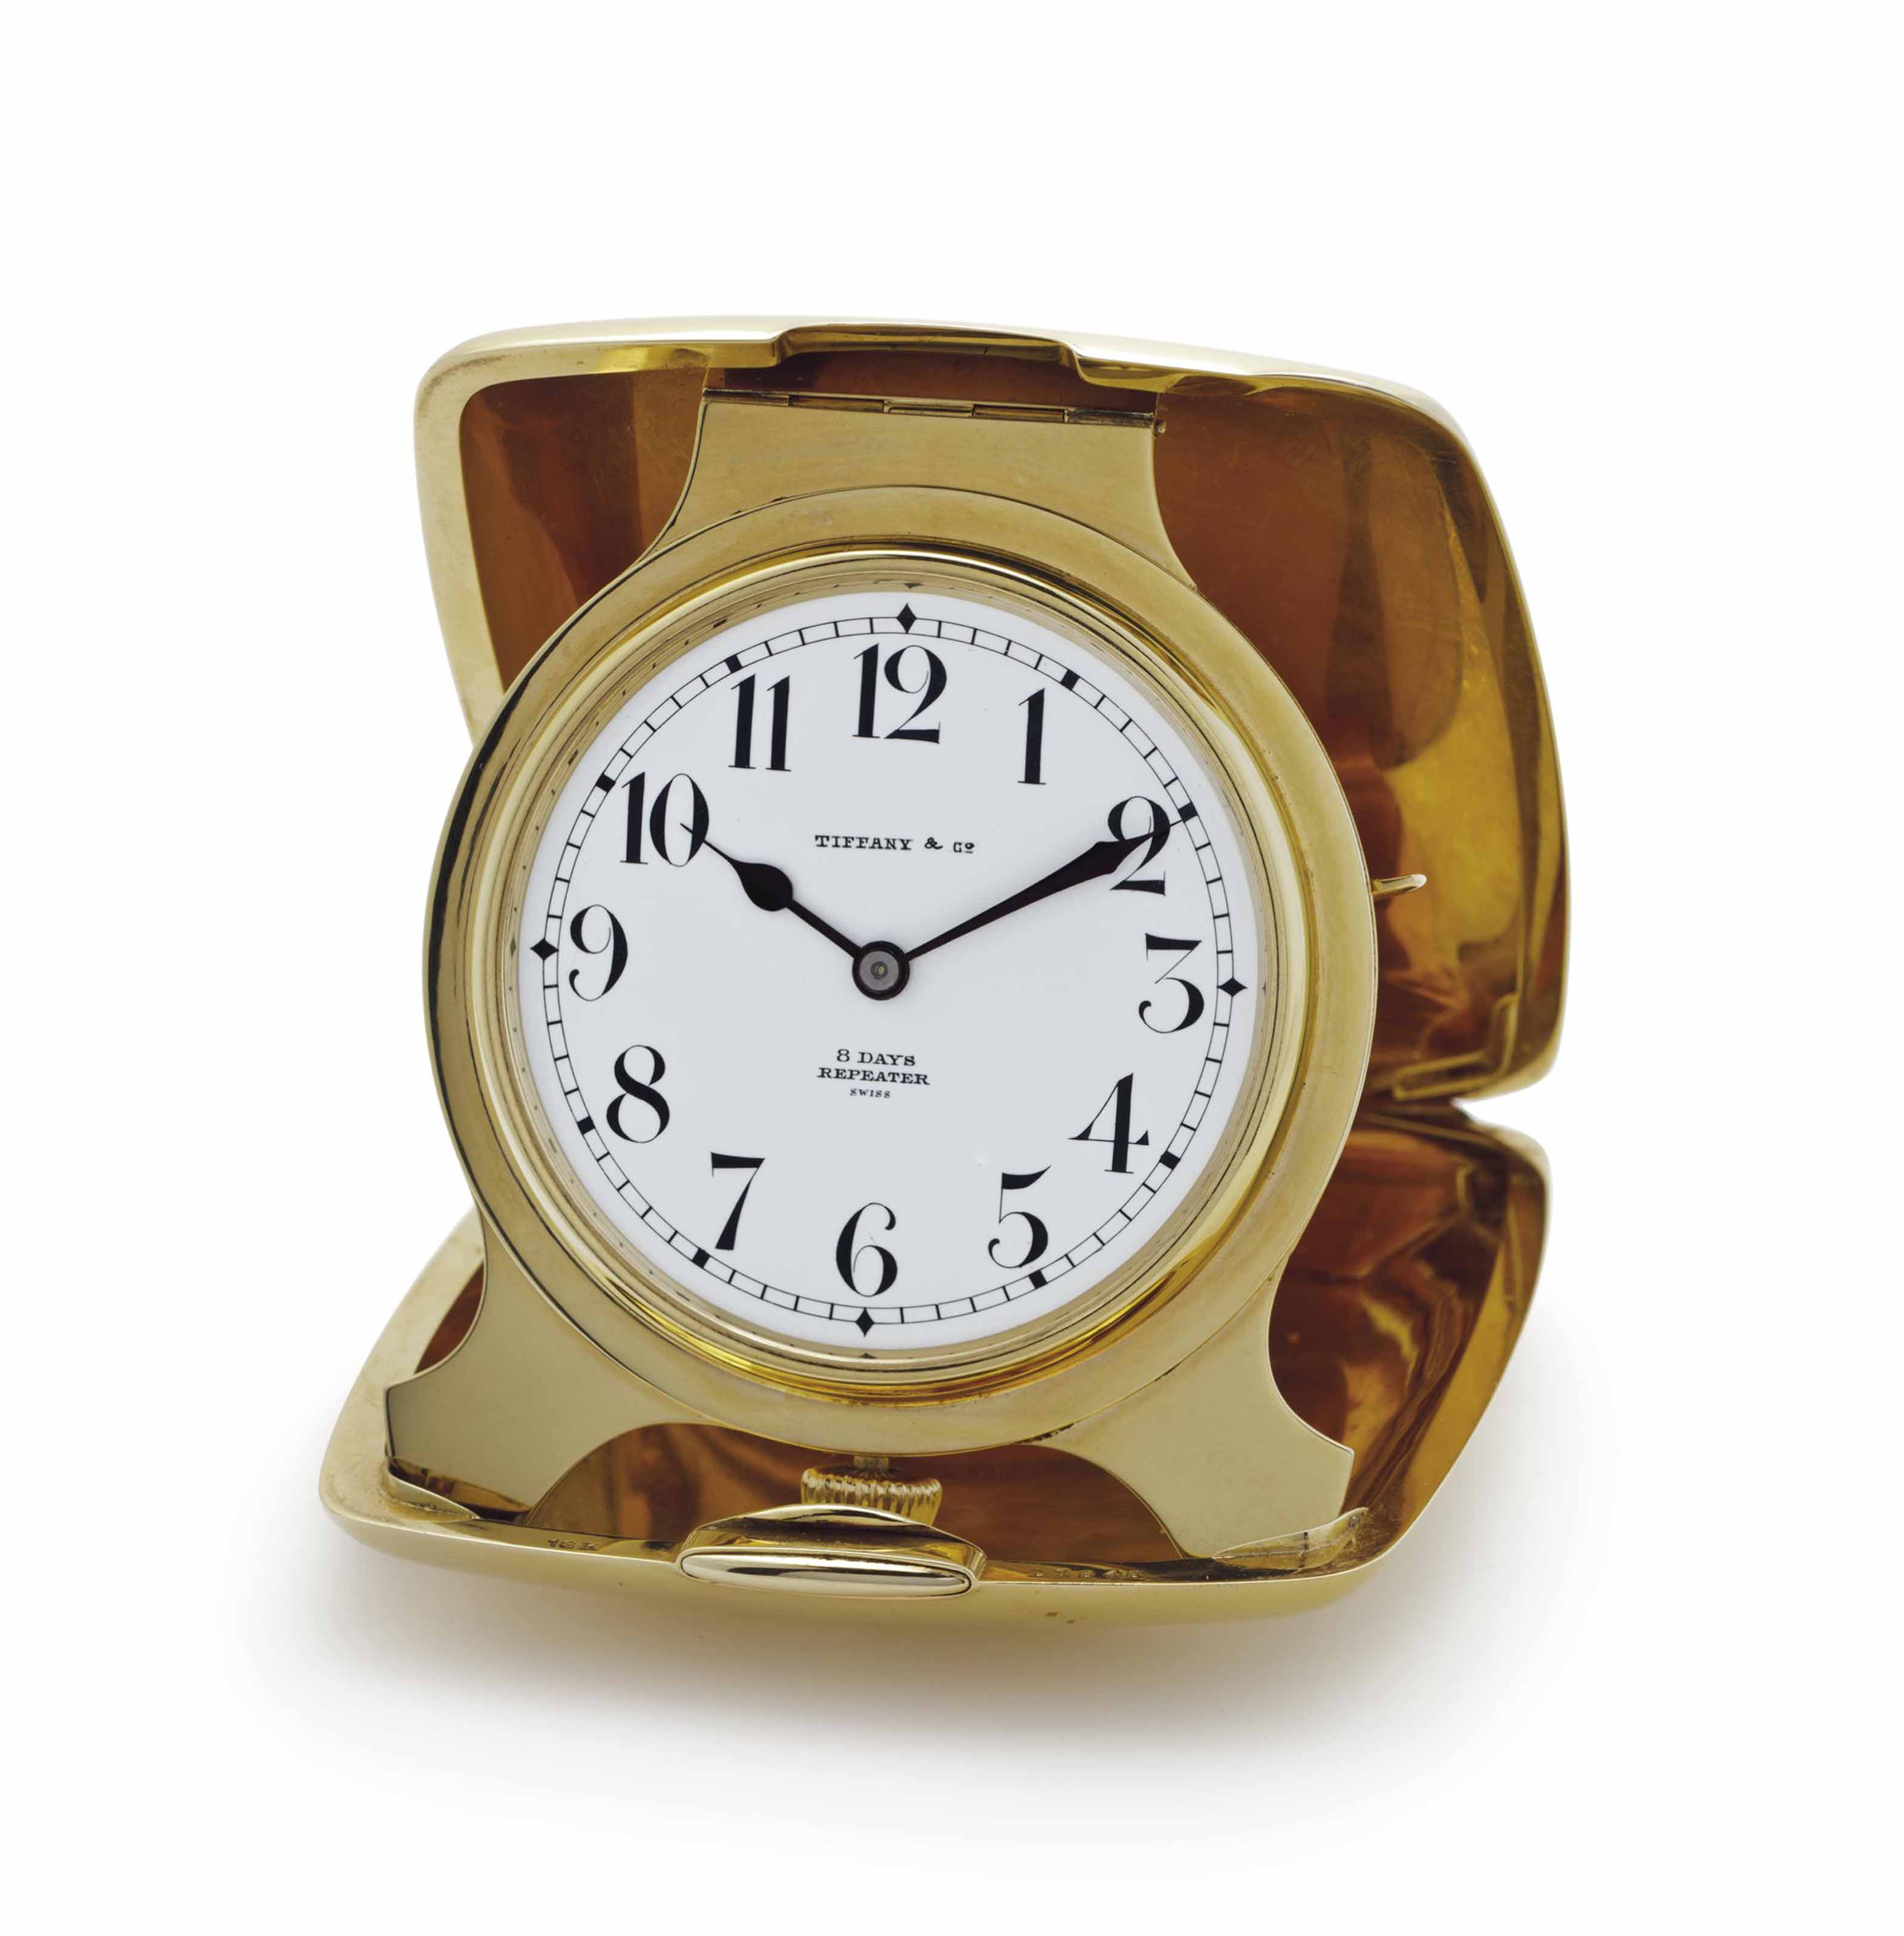 Tiffany and Wittnauer. An 18k Gold Quarter Repeating Folding Travel Clock with Presentation Box